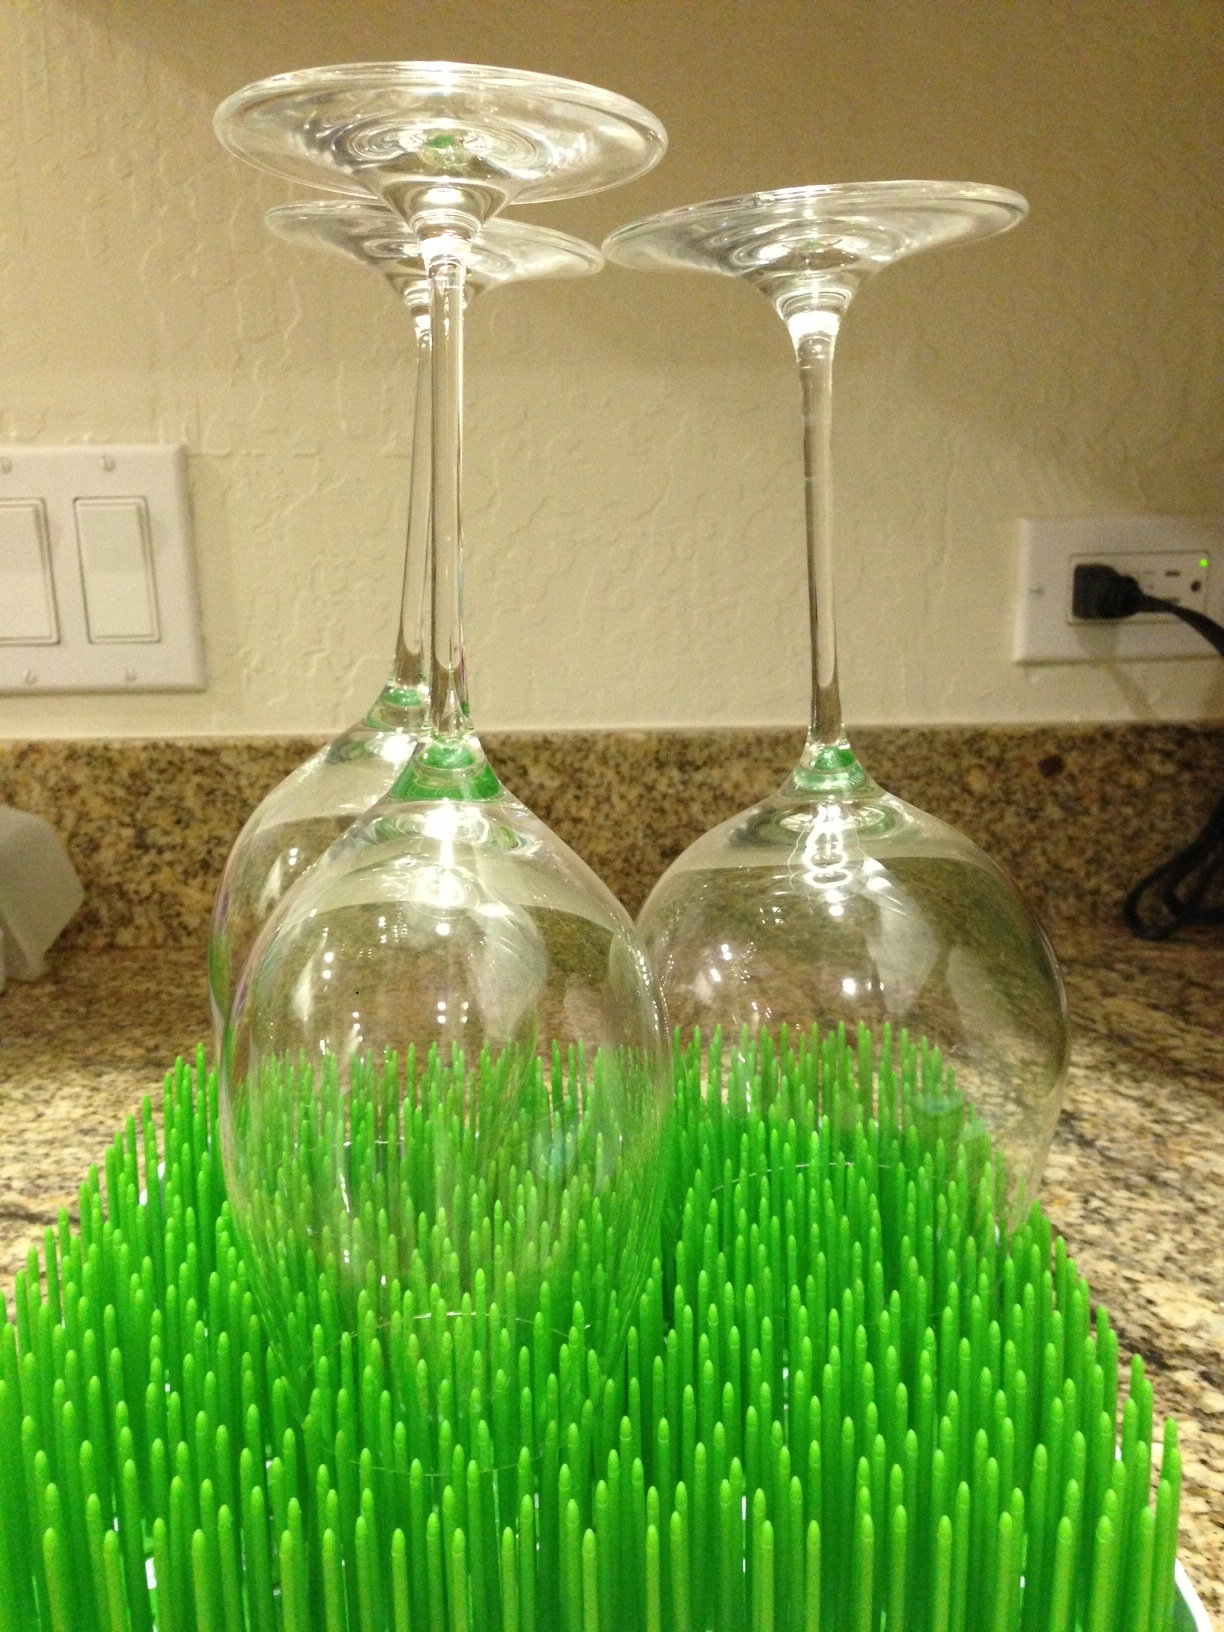 Today S Hint How To Make Baby Bottle Drying Racks Worth